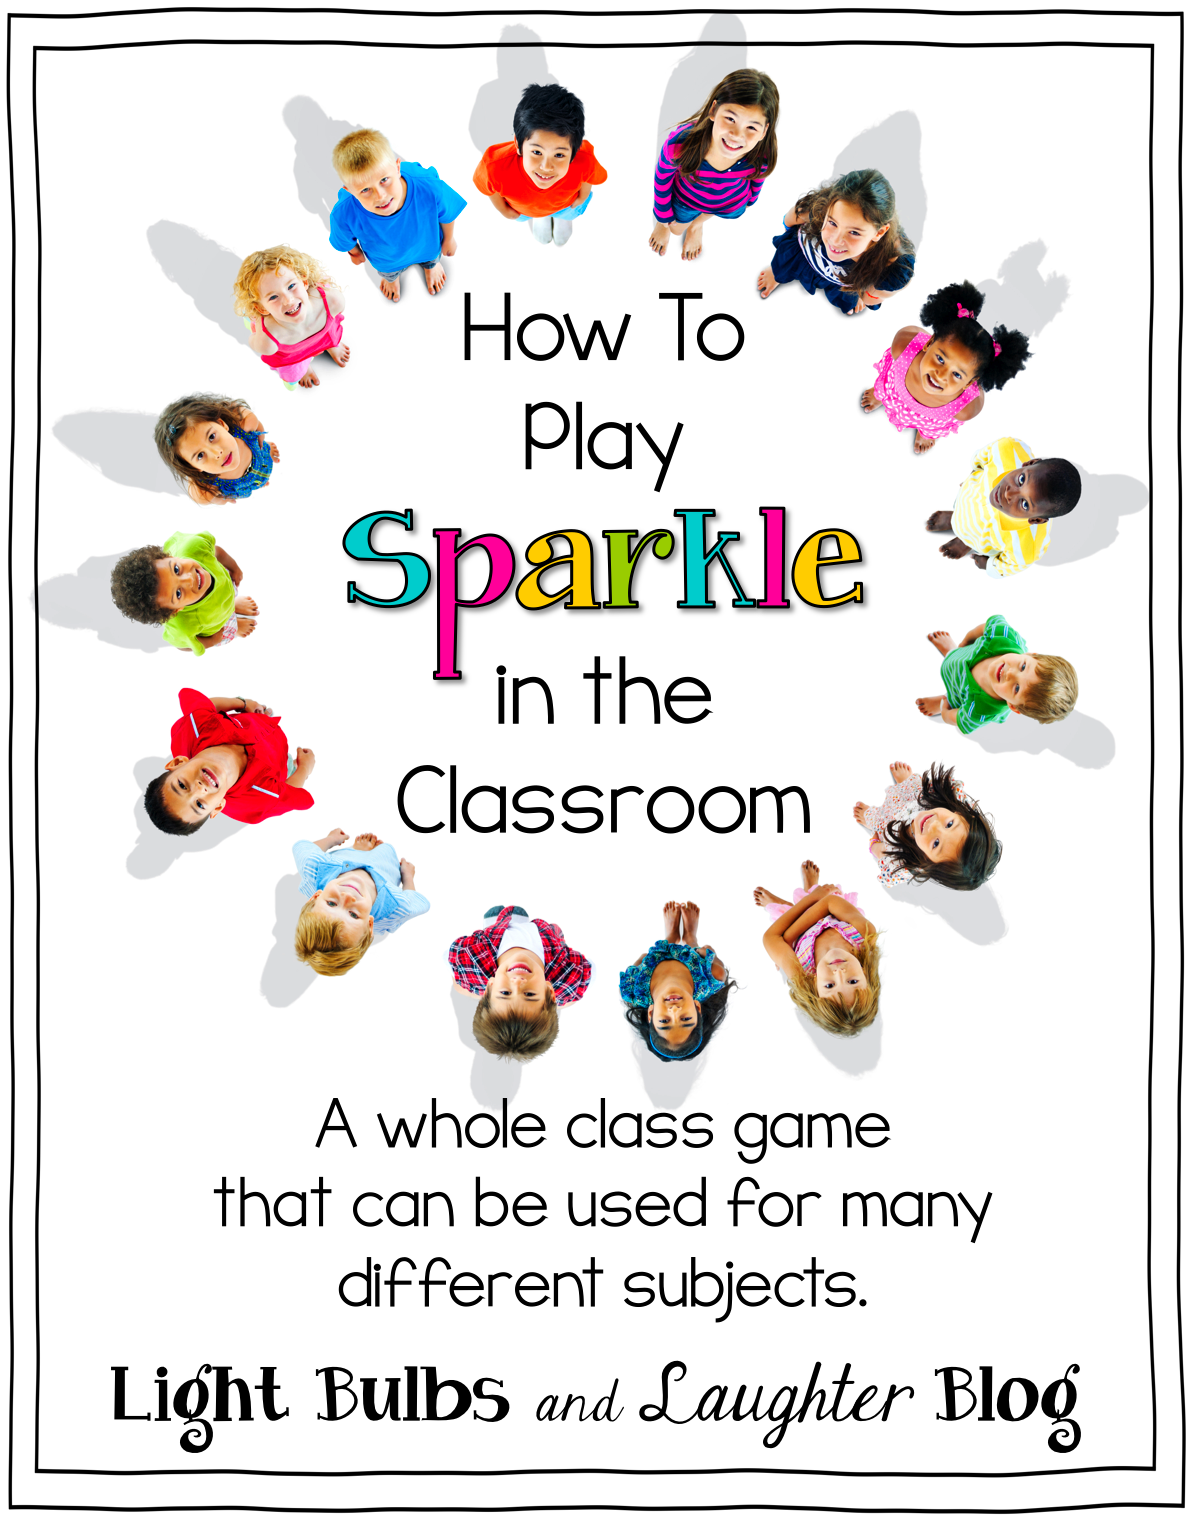 How To Play Sparkle in the Classroom - Light Bulbs and Laughter Blog